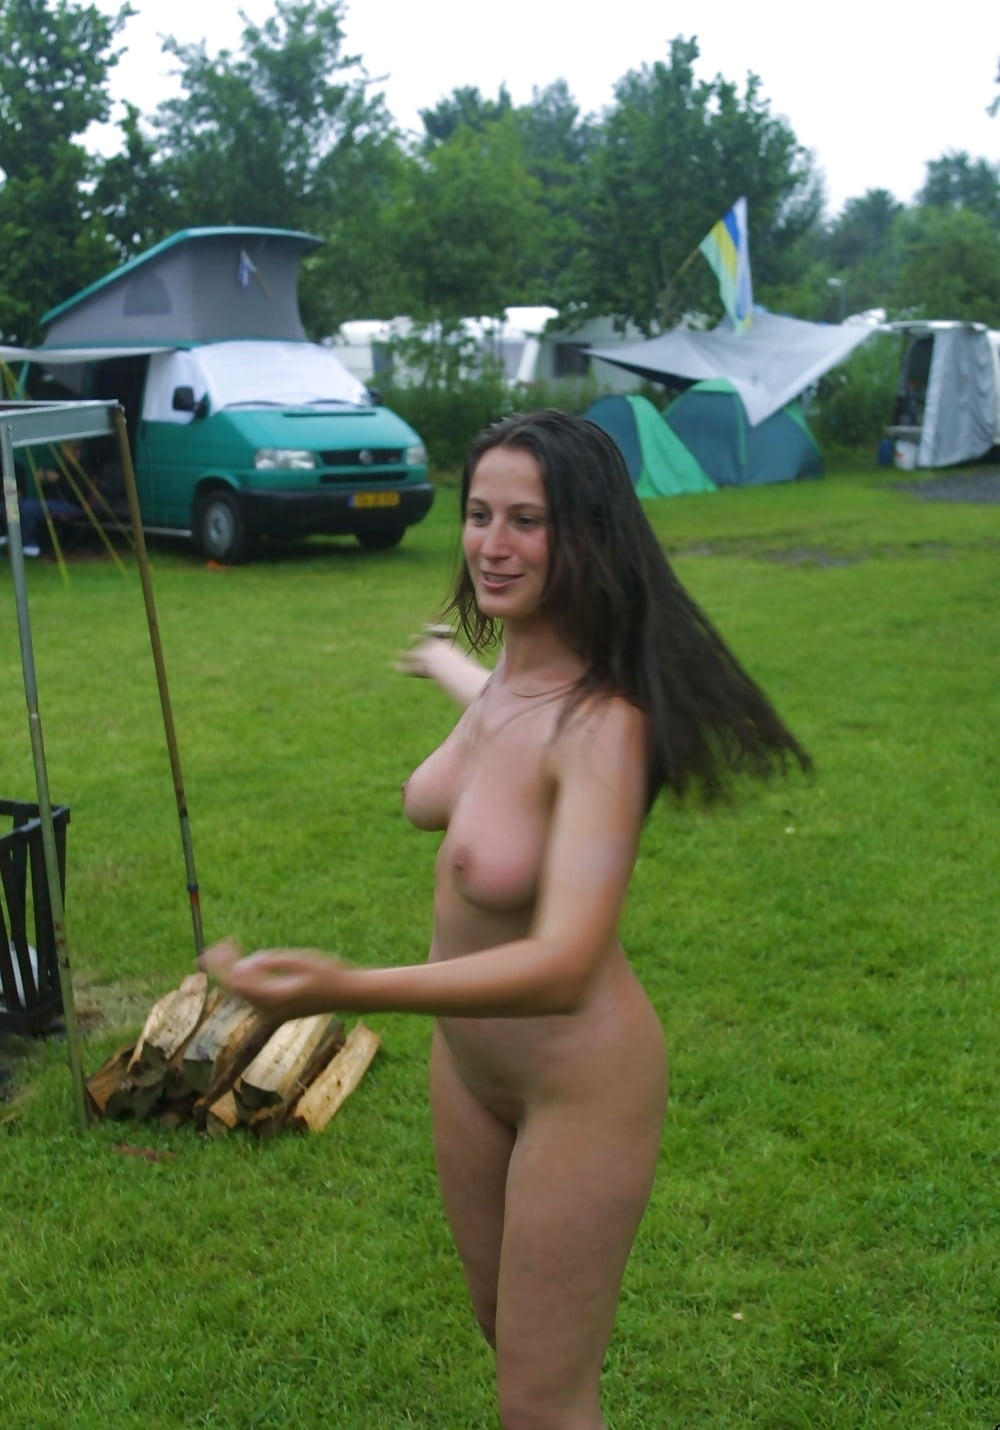 videos of women getting naked when camping